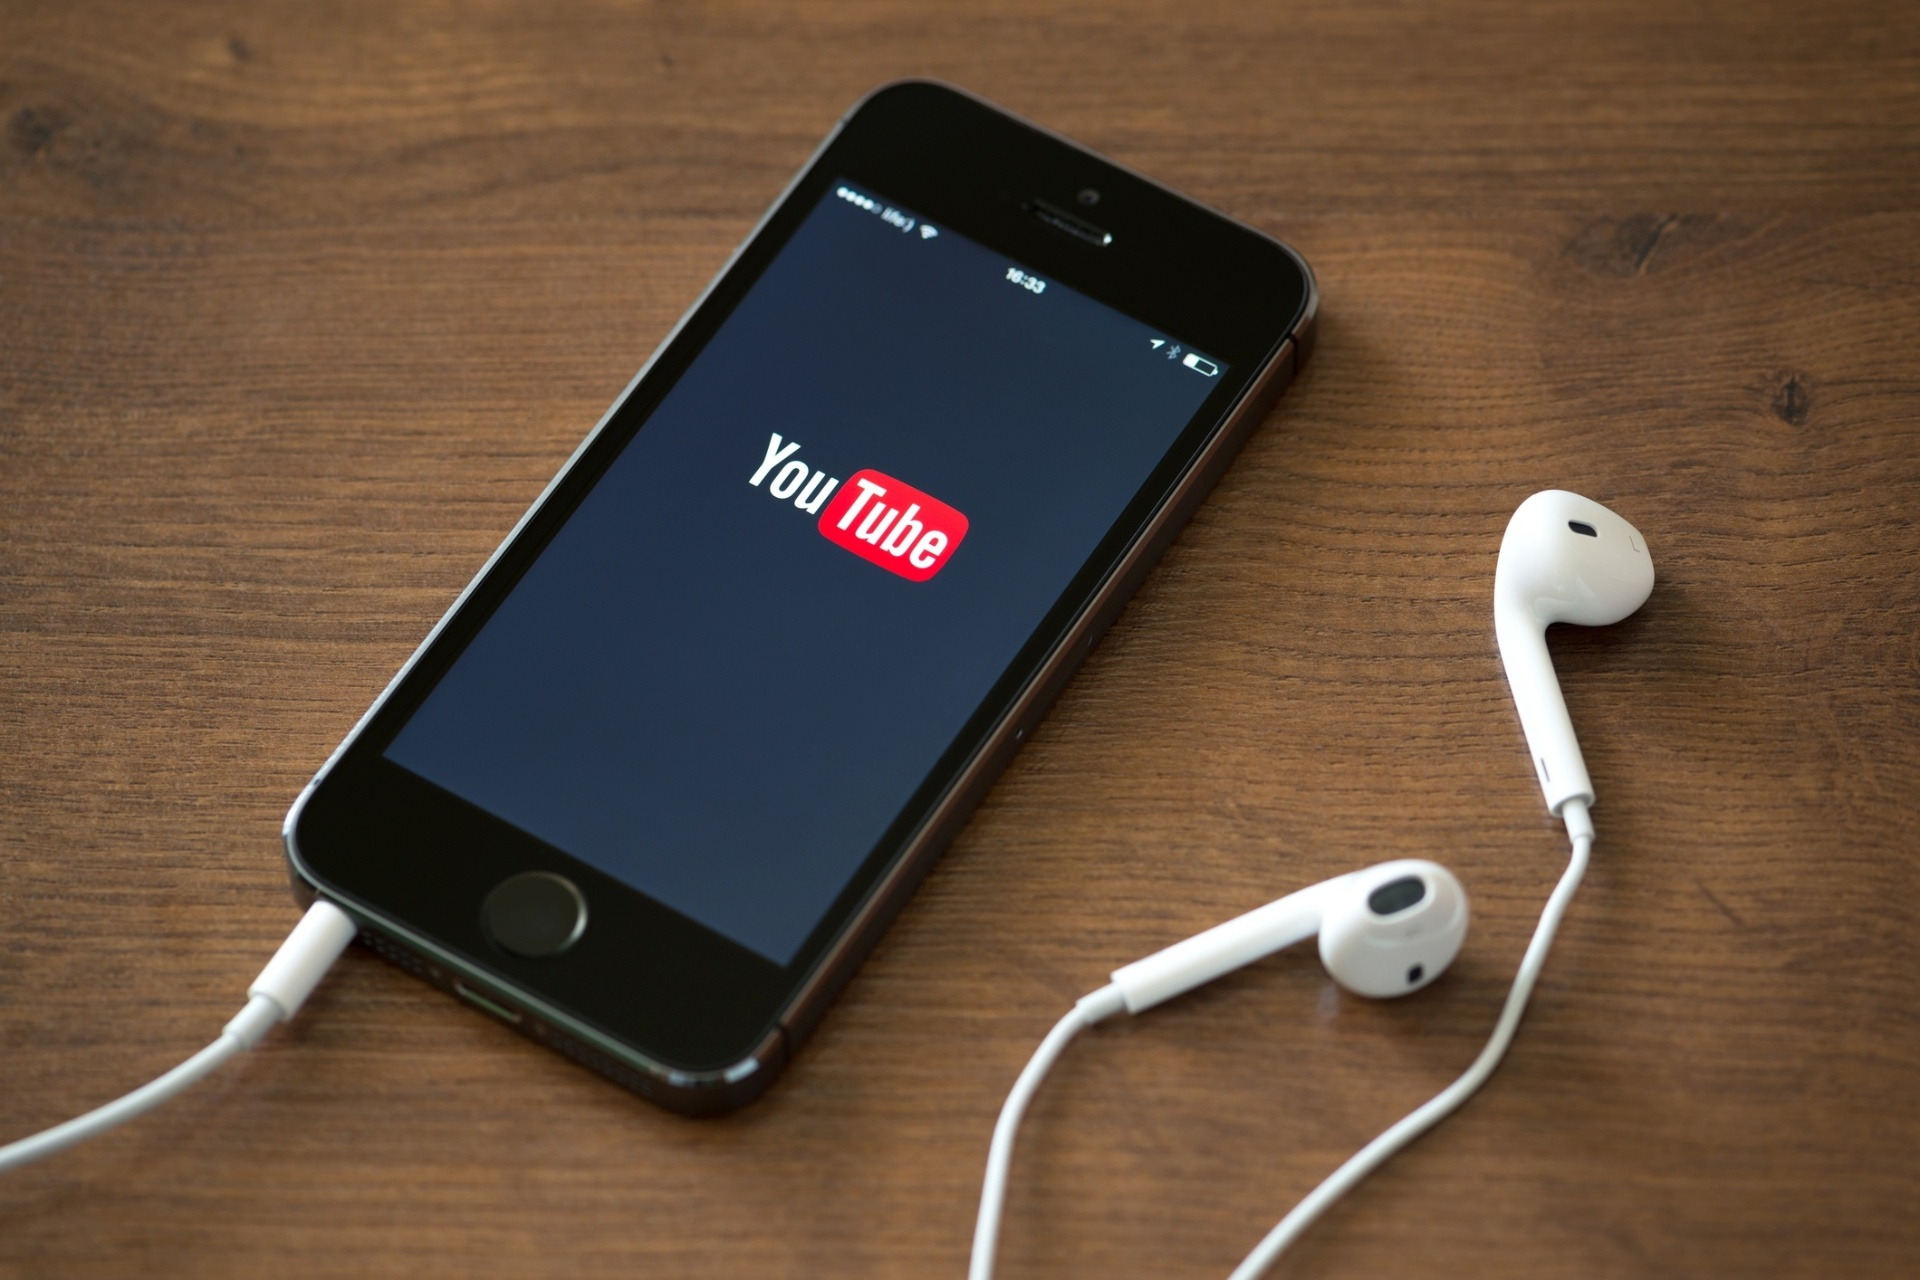 como baixar musicas do youtube para o celular iphone